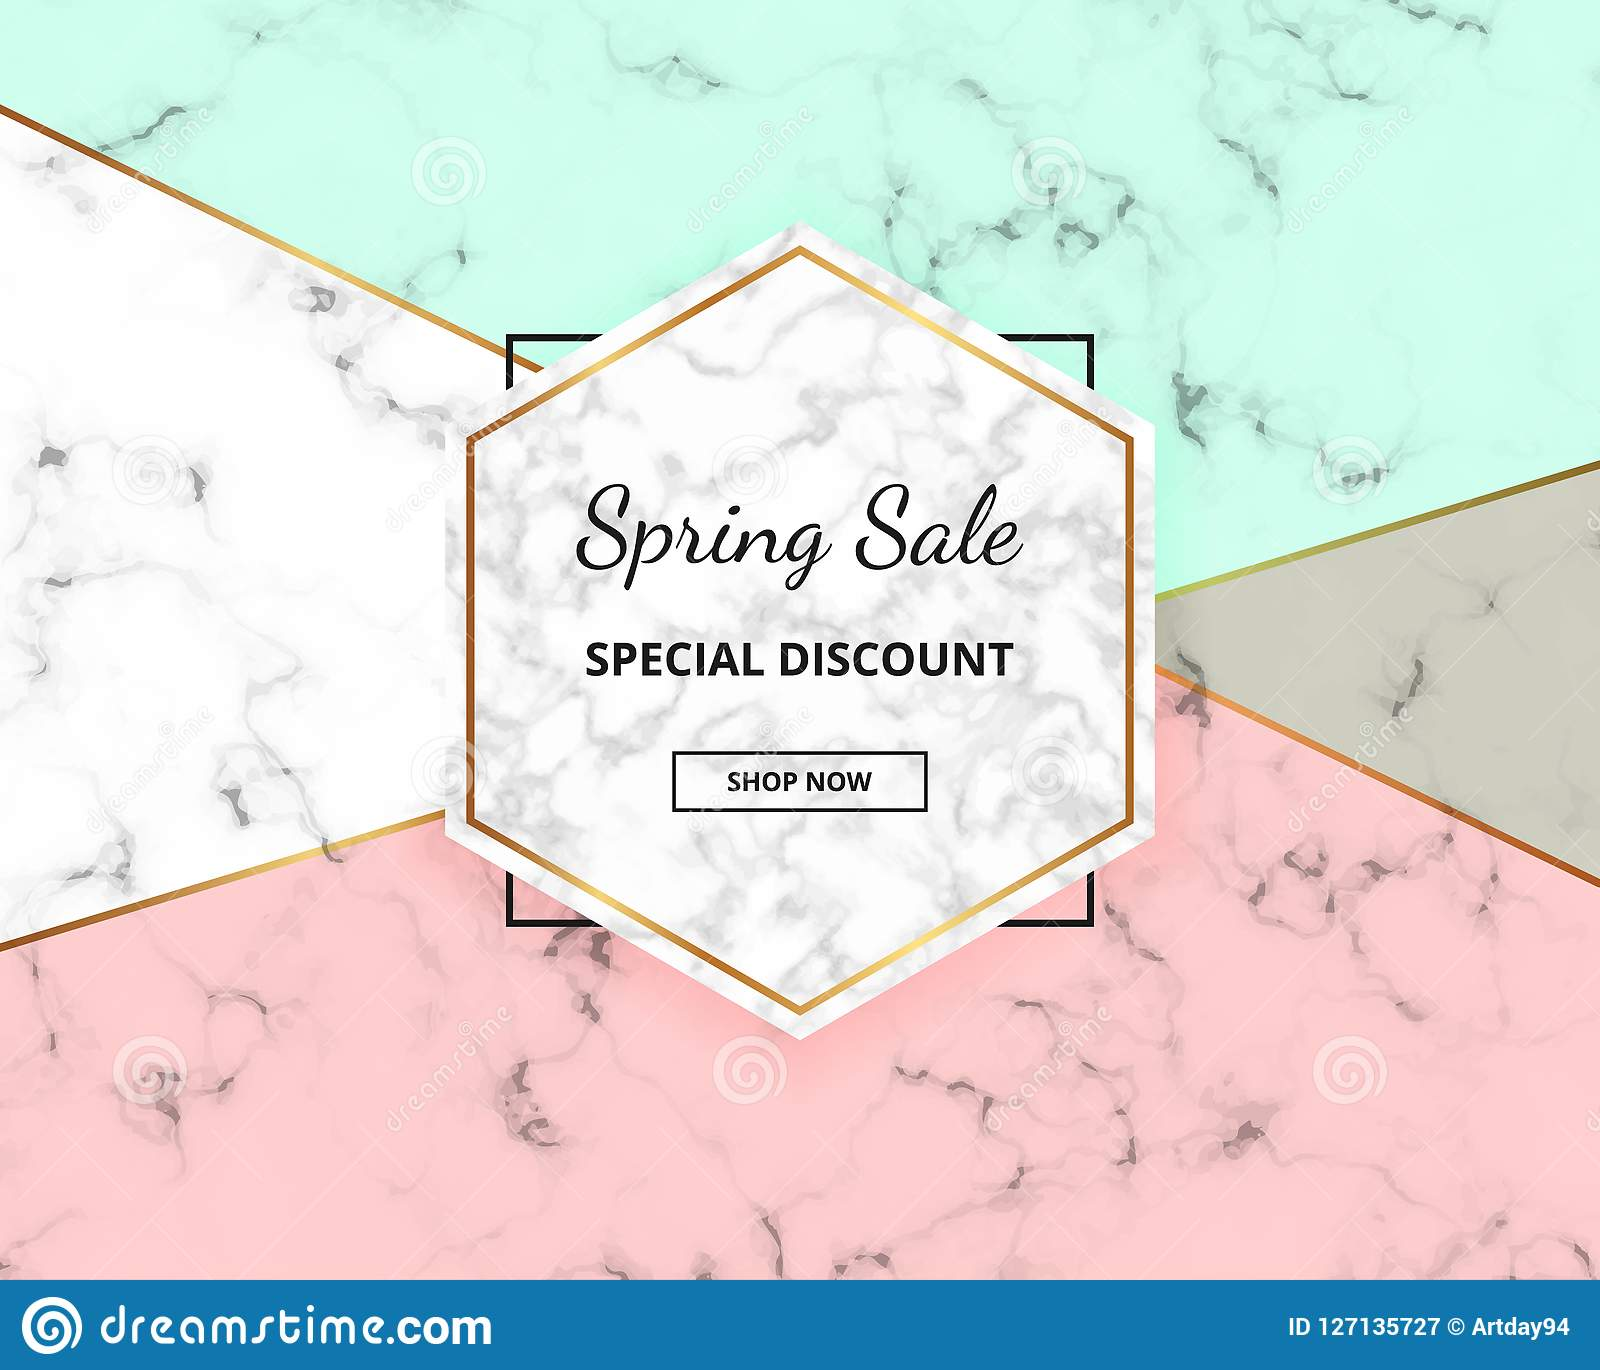 Spring sale cover geometric design with marble texture and gold glitter lines, green and pink colors background. Template for desi